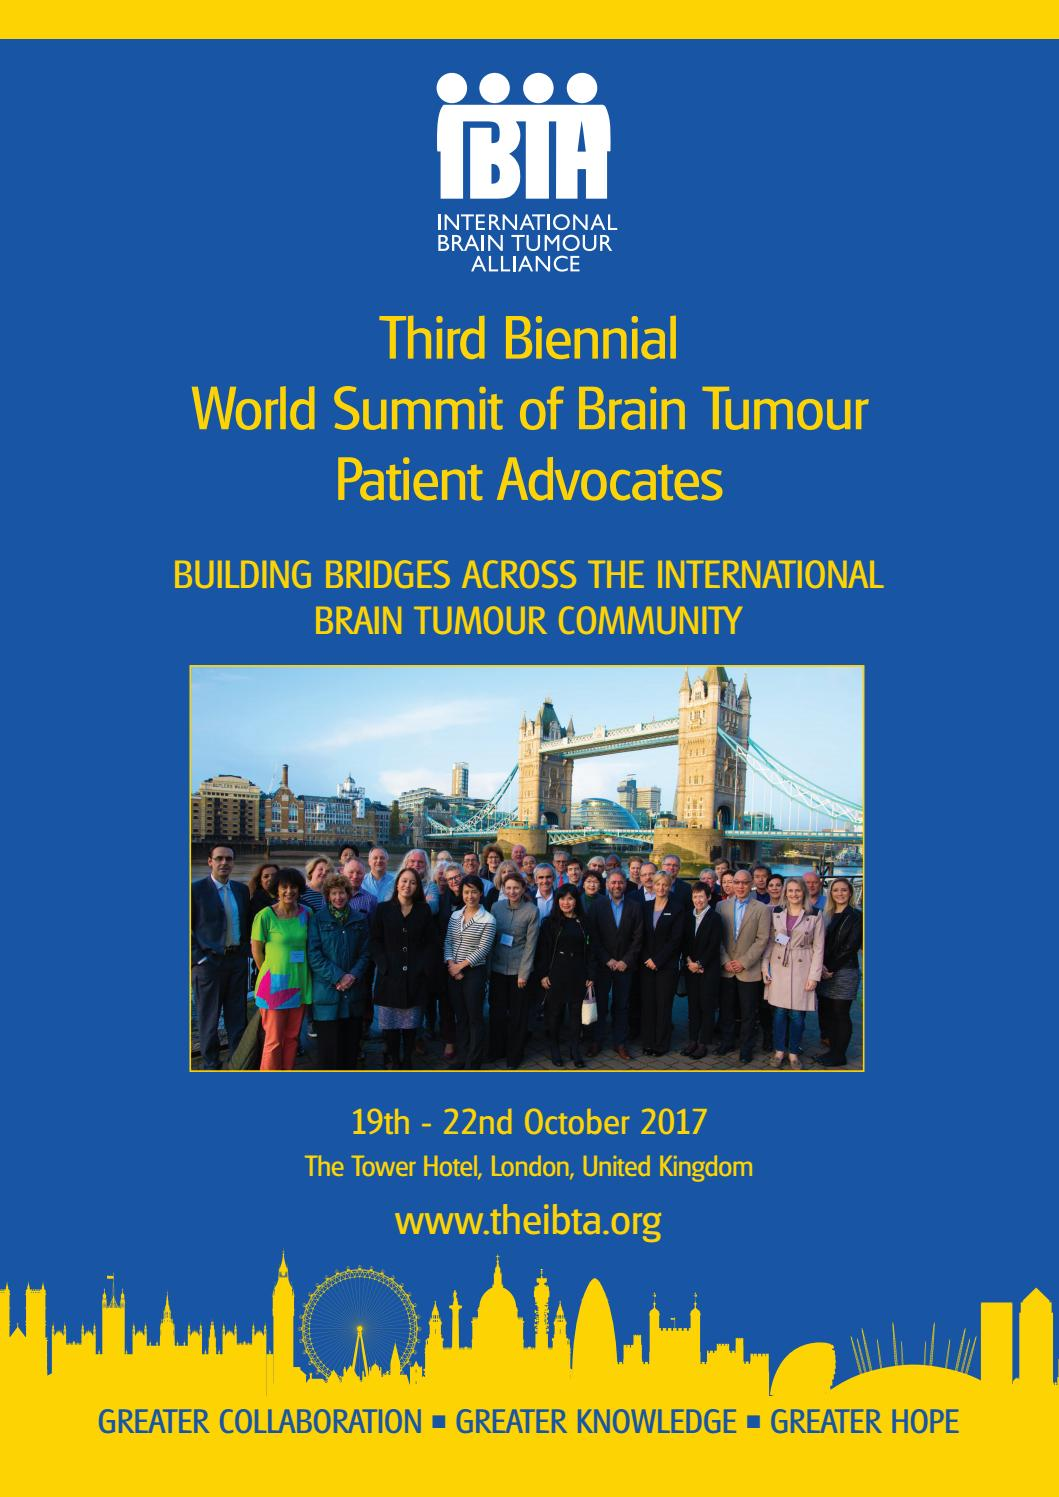 9e08777d0c4 Report on the Third World Summit of Brain Tumour Patient Advocates 2017 by  The International Brain Tumour Alliance (IBTA) - issuu